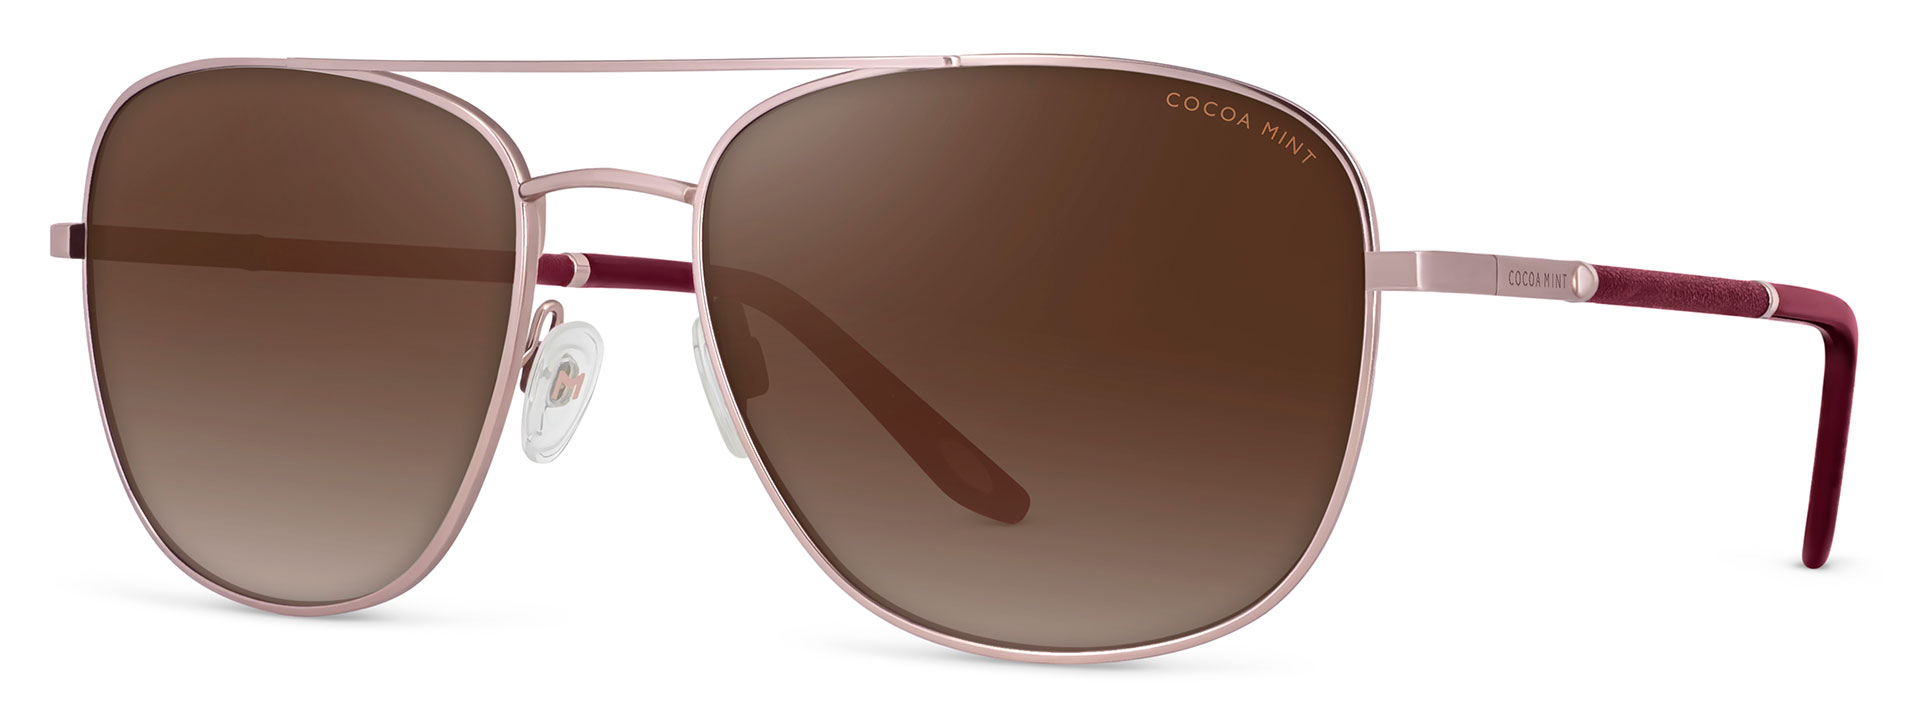 Cocoa Mint Sun Glasses - C1 Rose Gold - CMS2565-C1